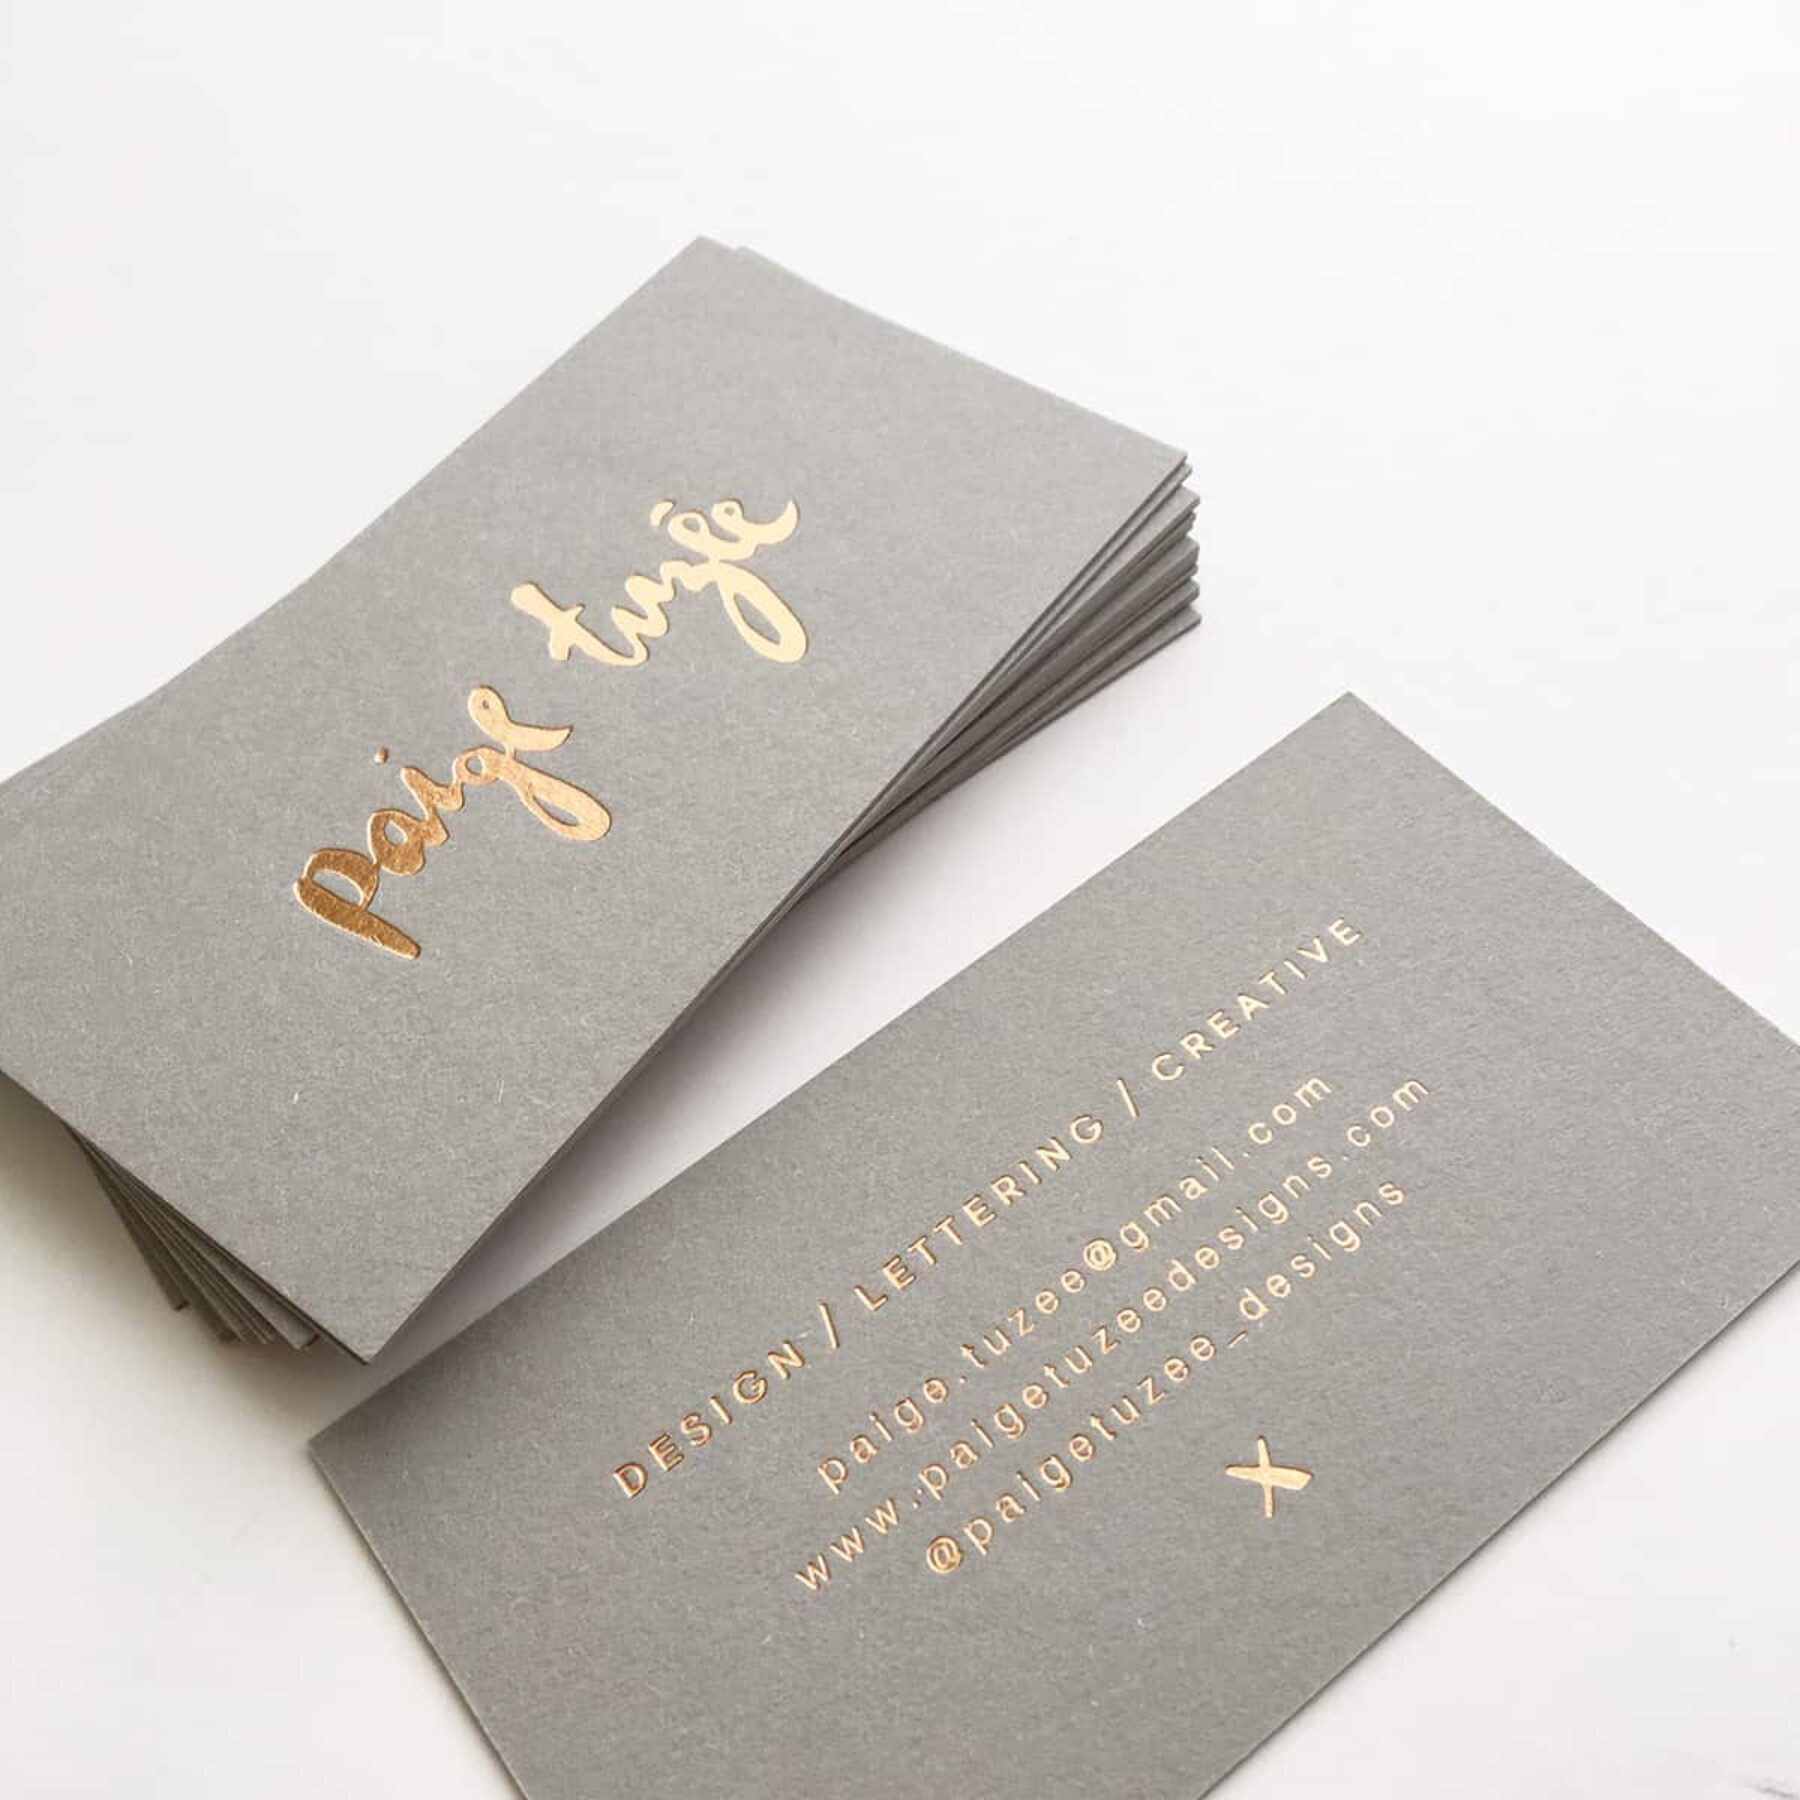 gold-foiled letterpress business cards by Paige Tuzee